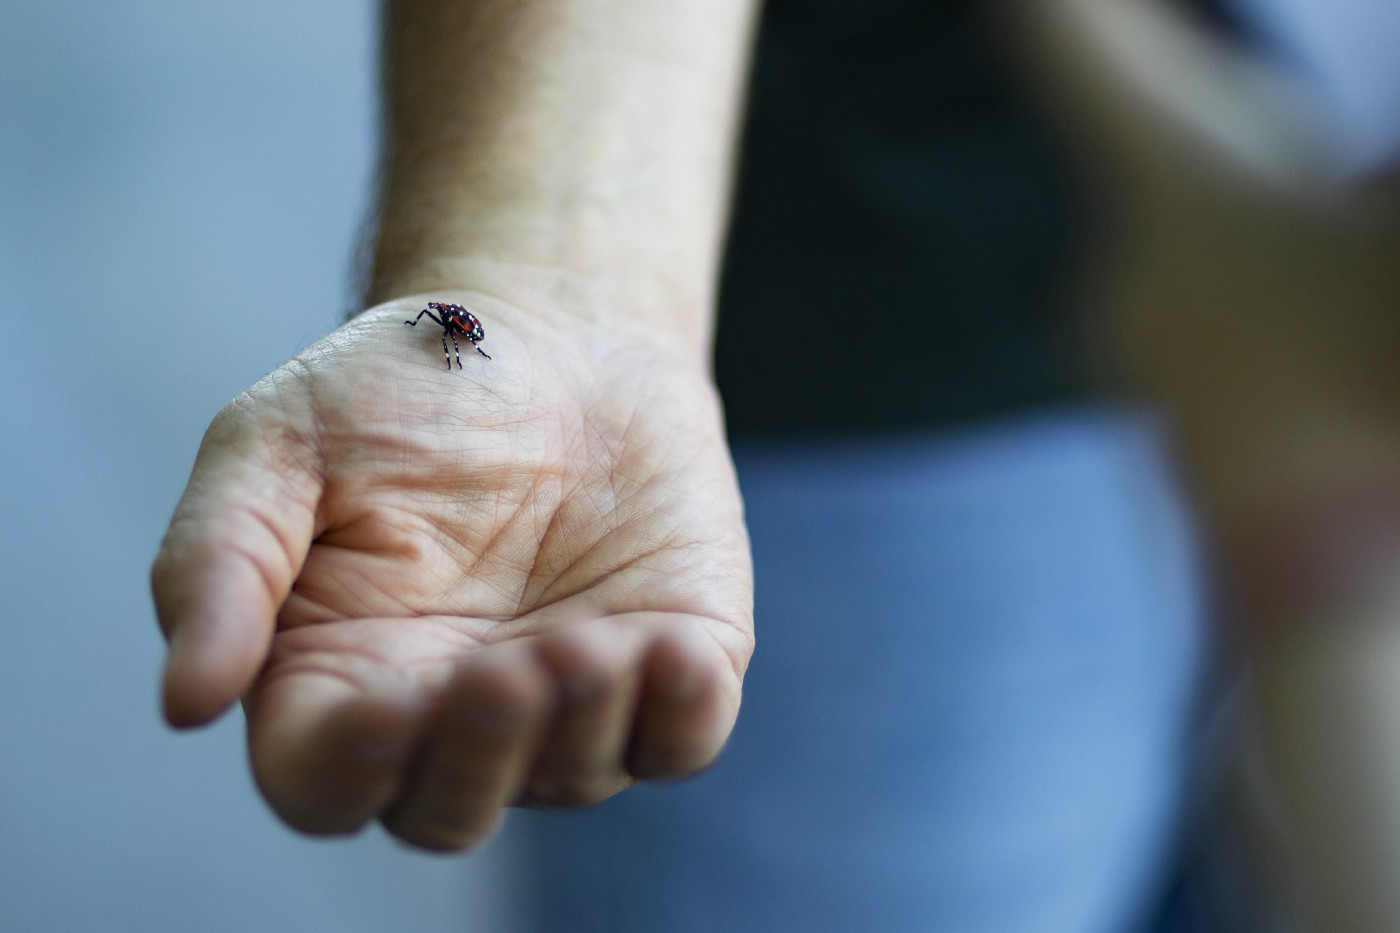 an outstretched arm with an insect on the hand